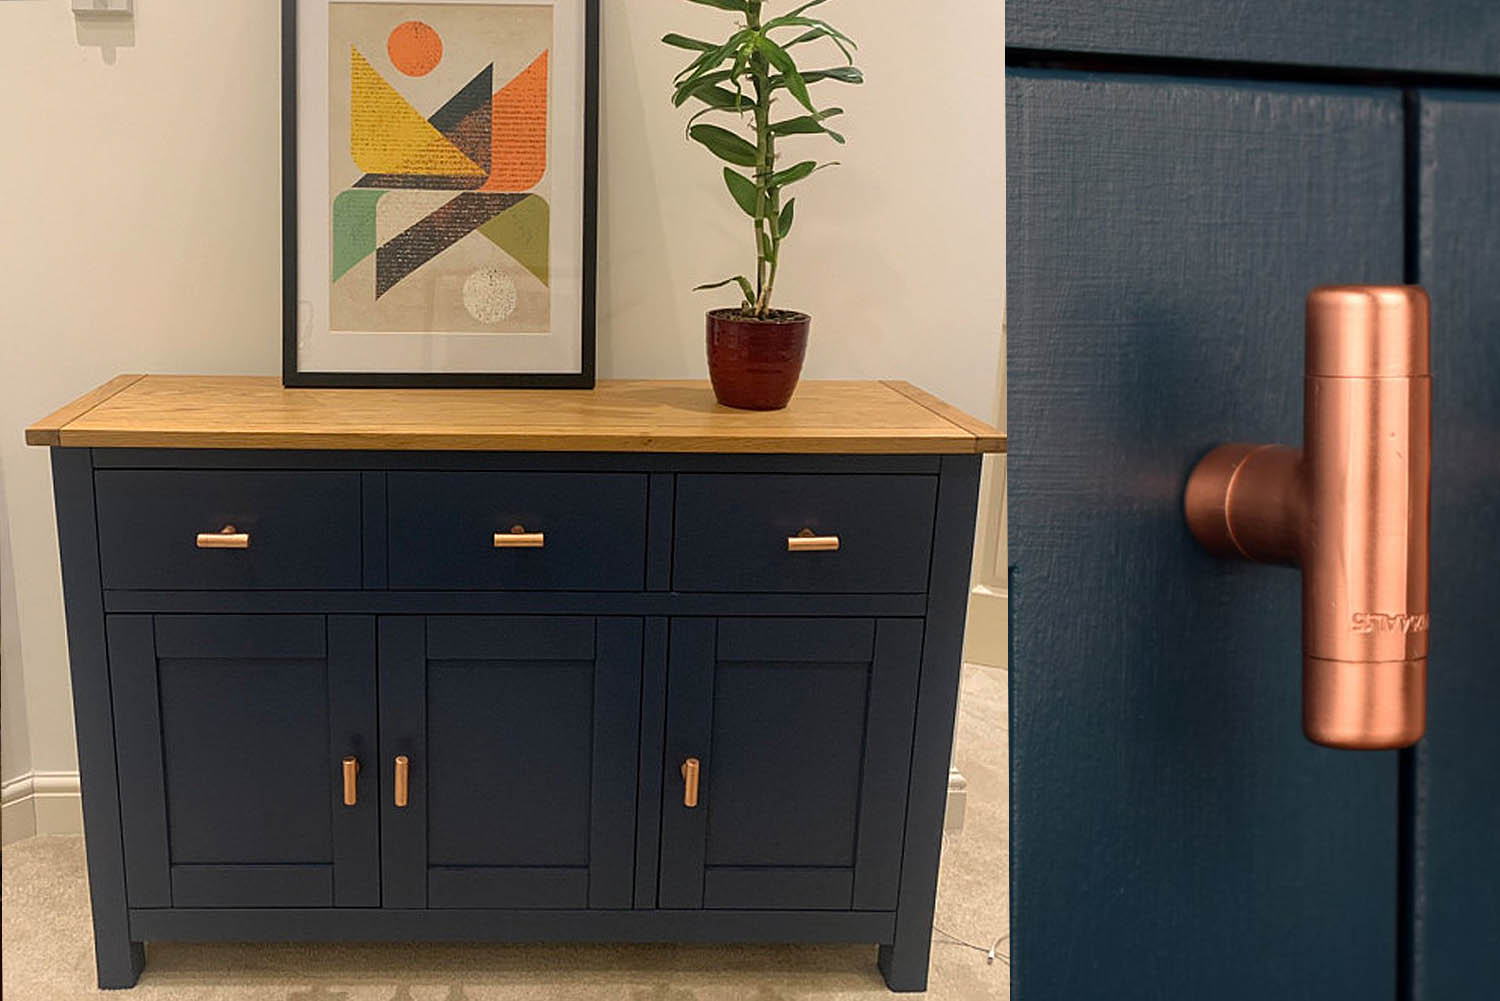 Customers Blue dresser with copper knobs